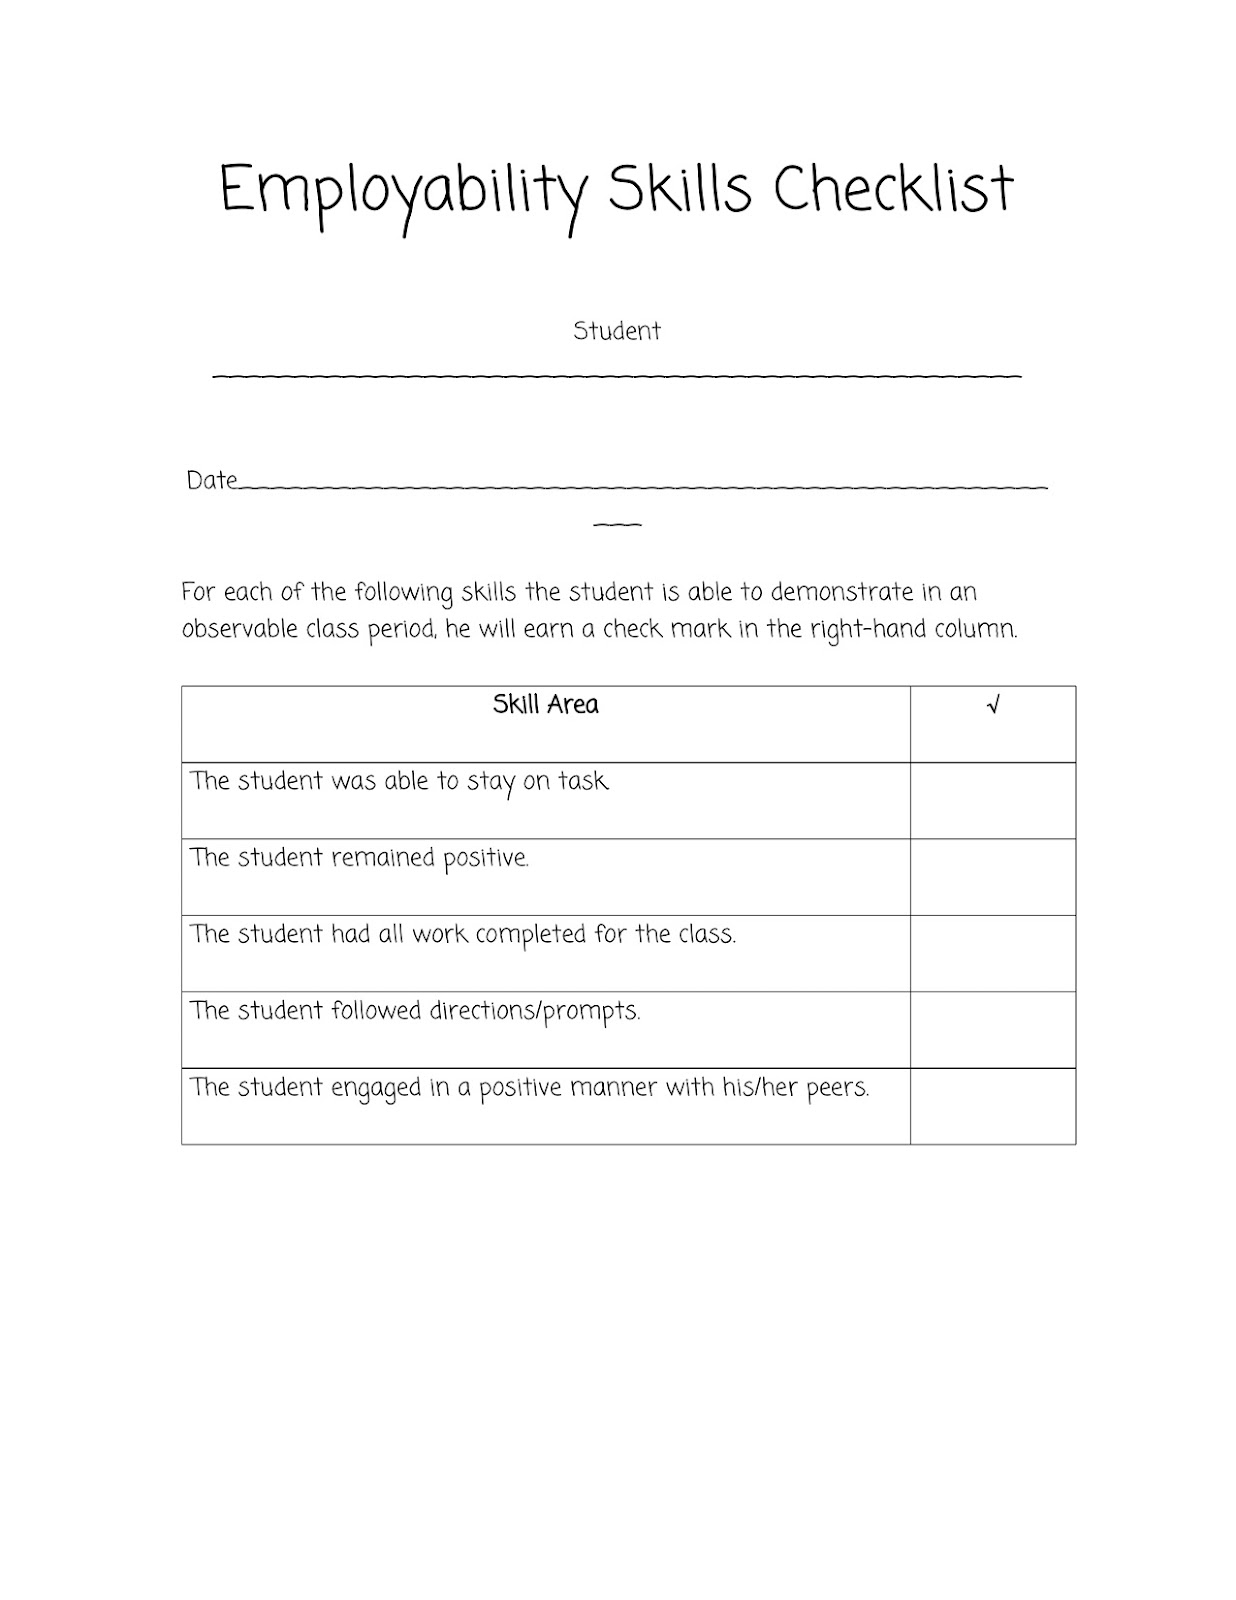 sped head  this is another checklist i use that is based off the iowa core s employability skills it is another observation form i use for iep data